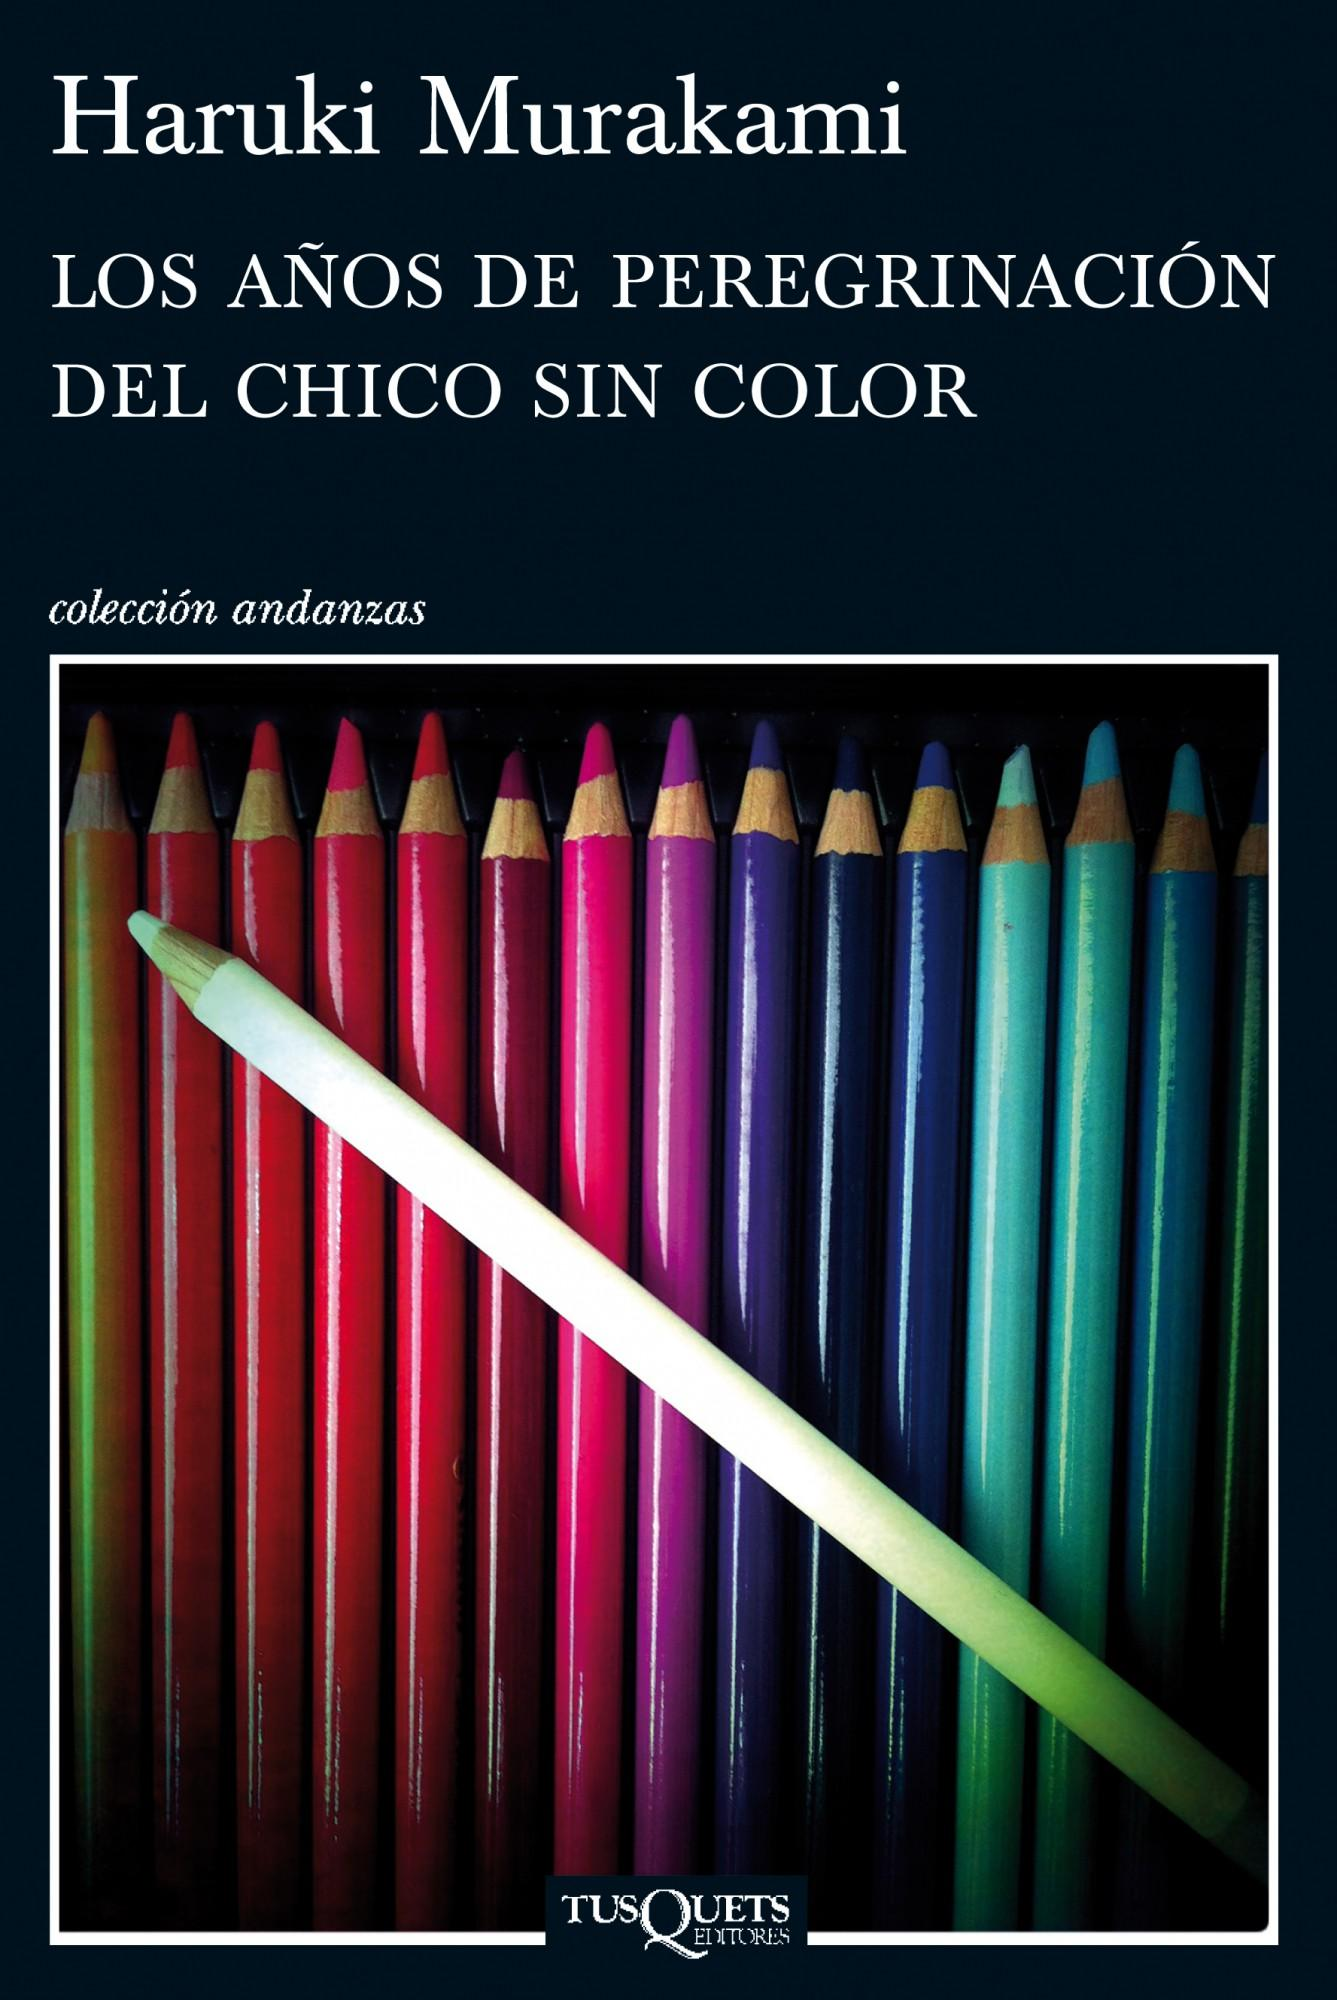 libro-haruki-murakami-chico-color